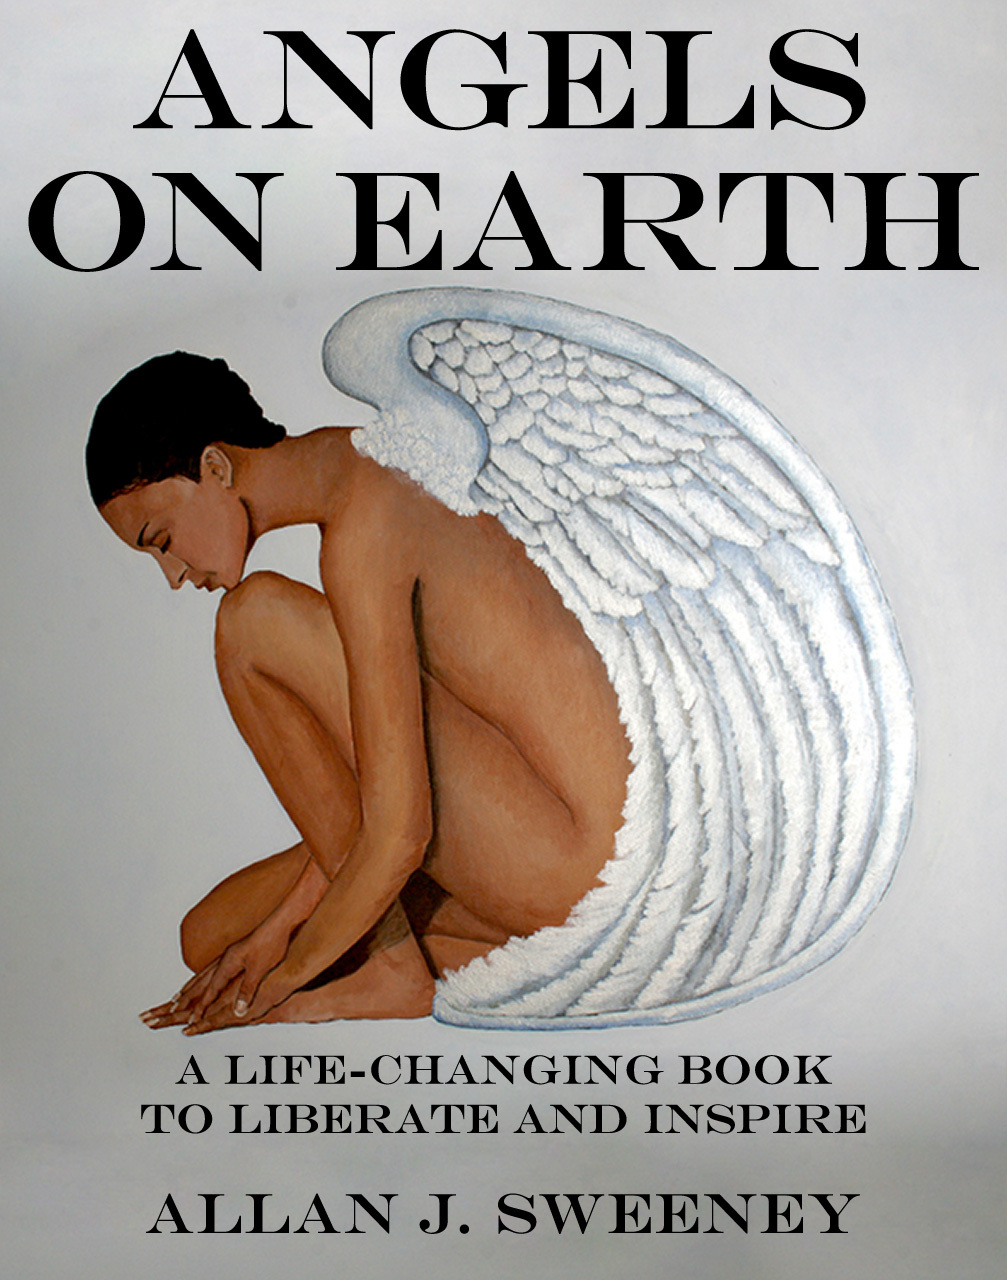 Angels on Earth: A Life-Changing Book to Liberate and Inspire